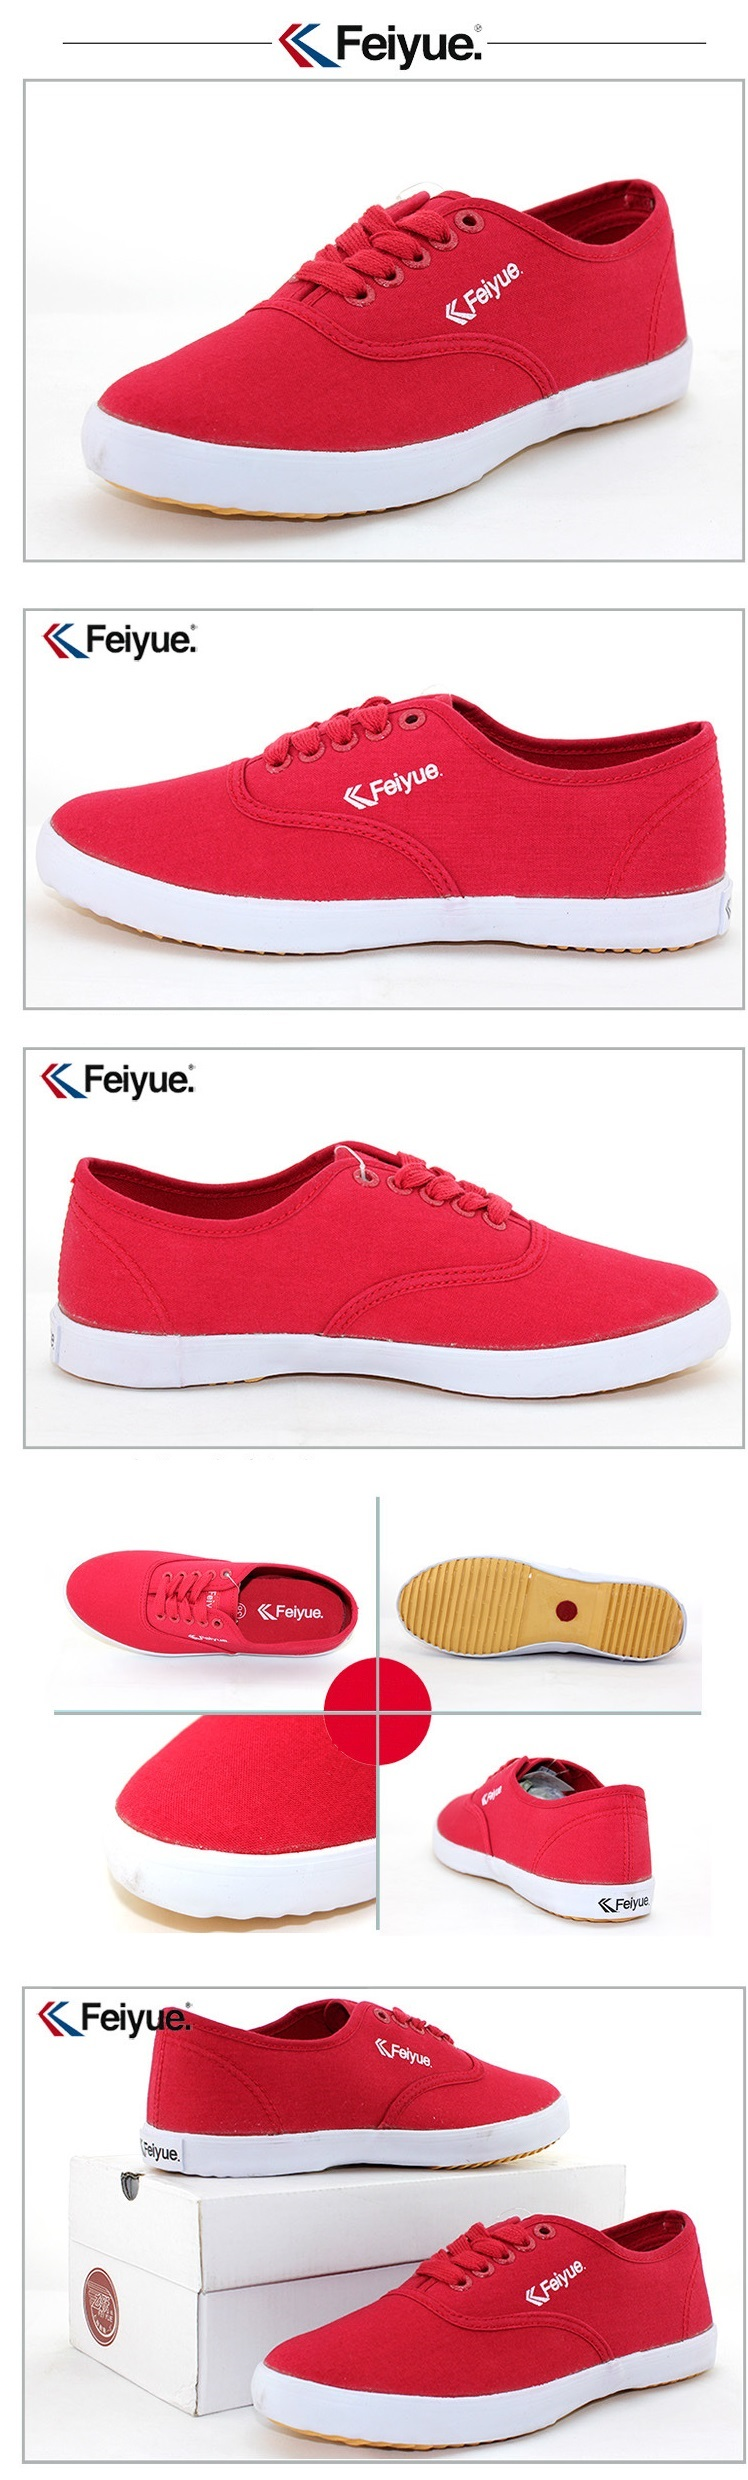 Feiyue Plain Tennis Shoes